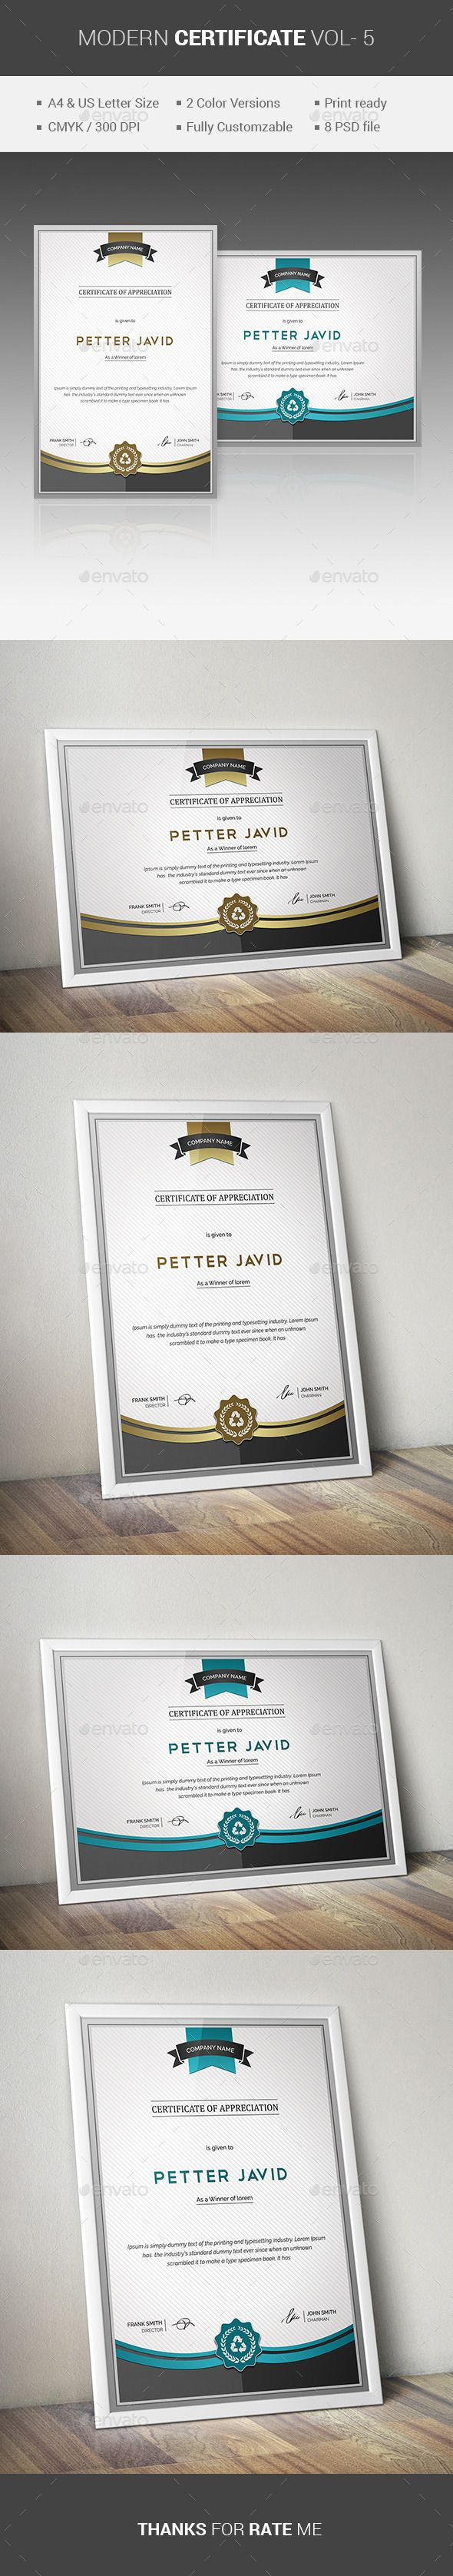 Modern Certificate Template PSD. Download here: http://graphicriver.net/item/modern-certificate-vol-5/11136971?ref=ksioks